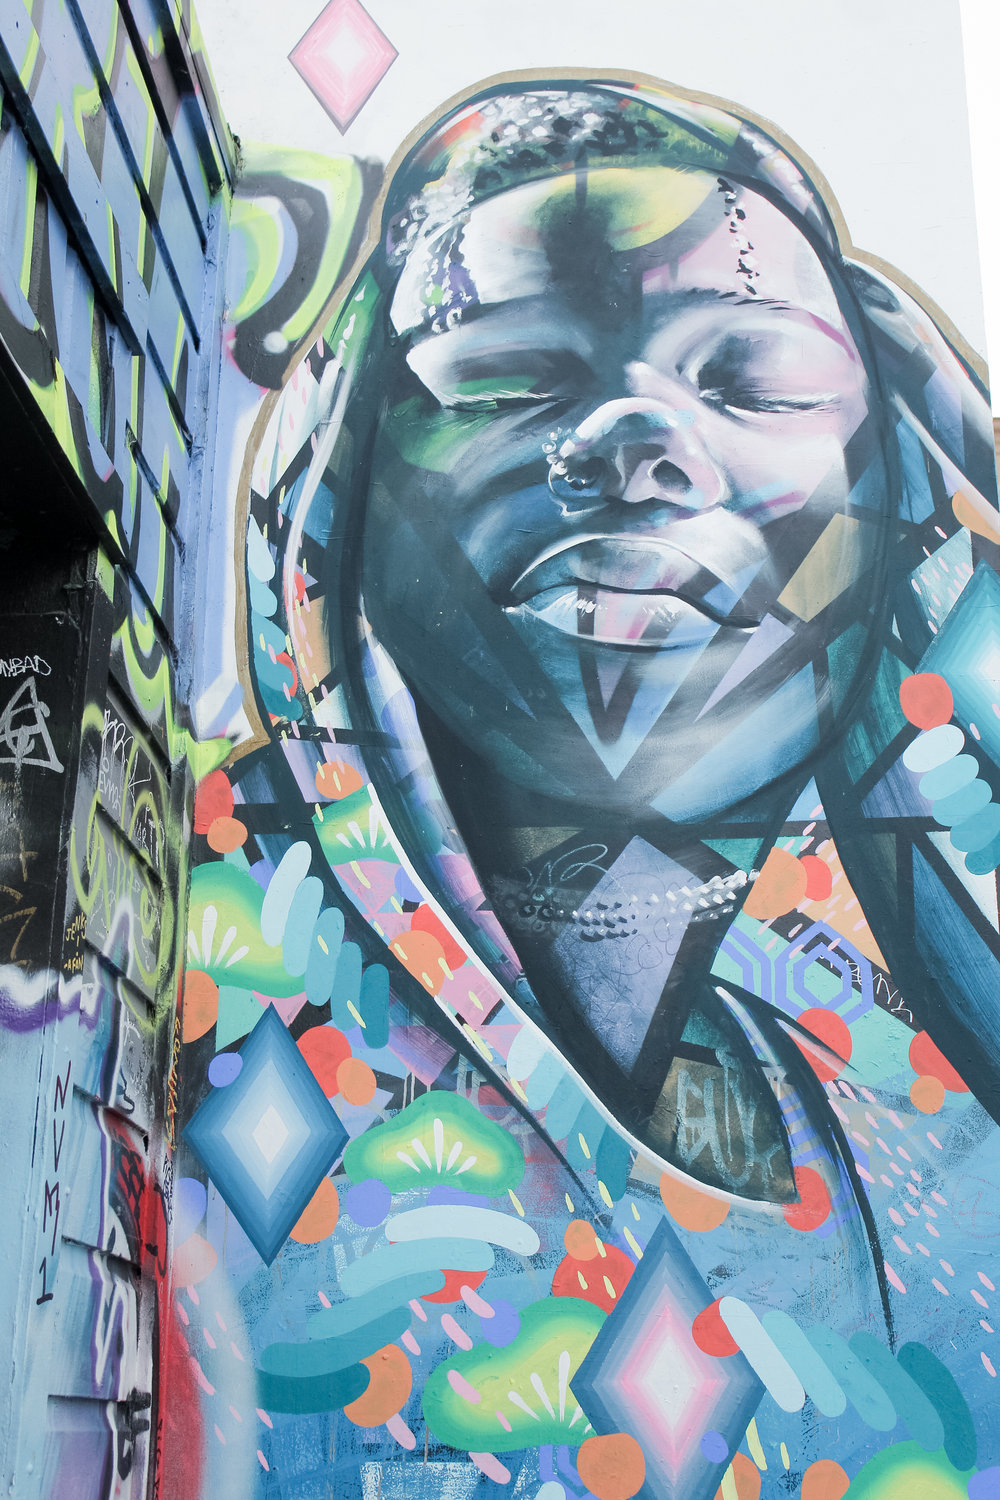 mural art in Clarion Alley in San Francisco's Mission District | tintedgreen